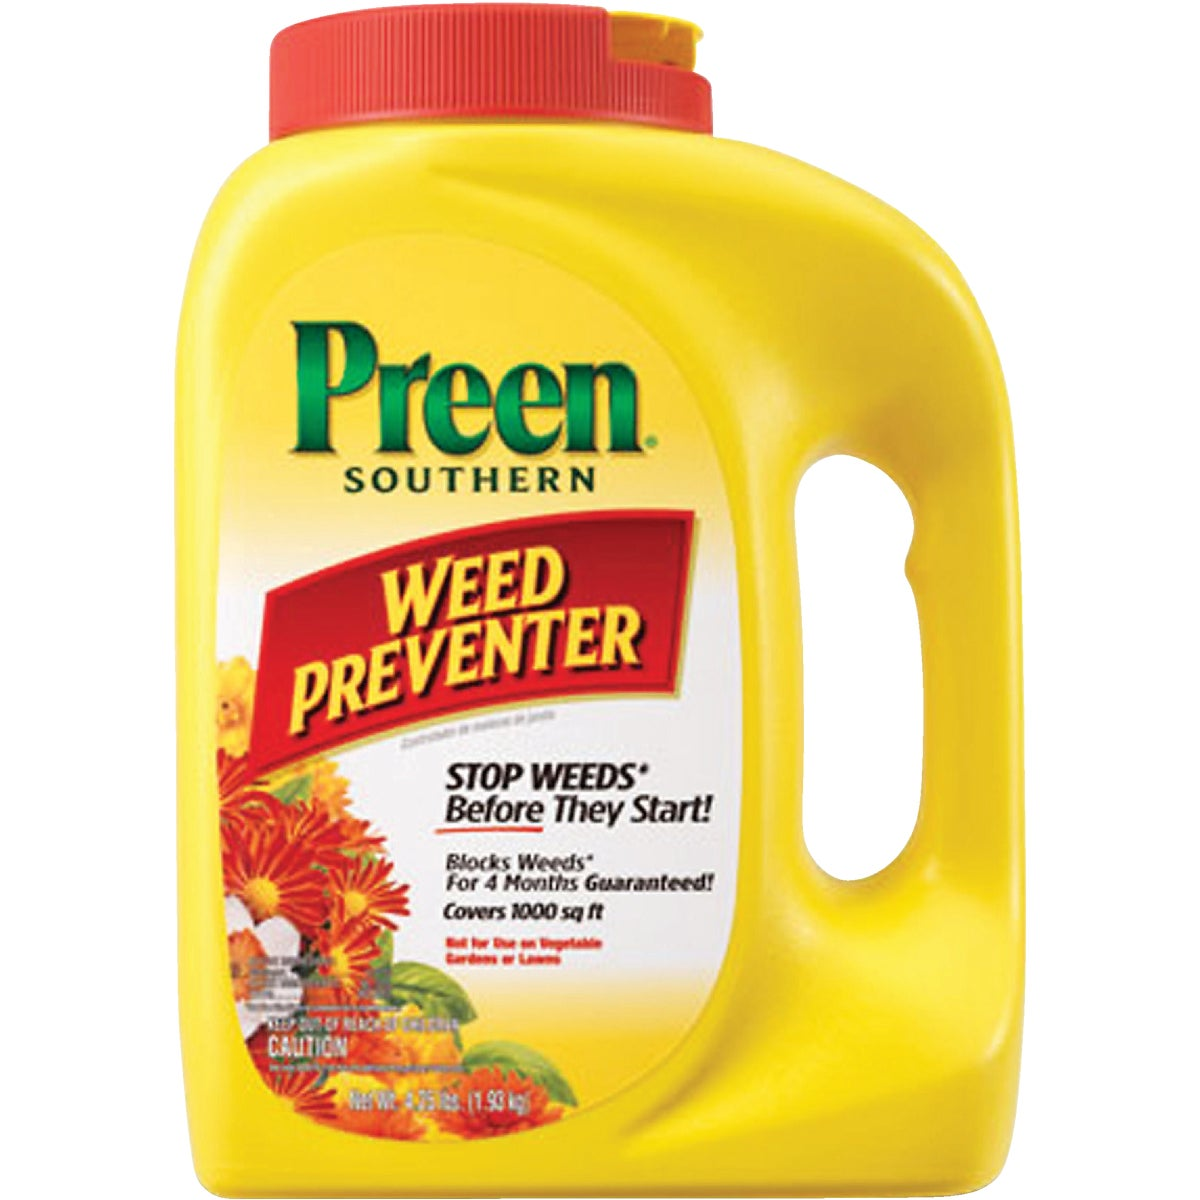 SO PREEN WEED PREVENTER